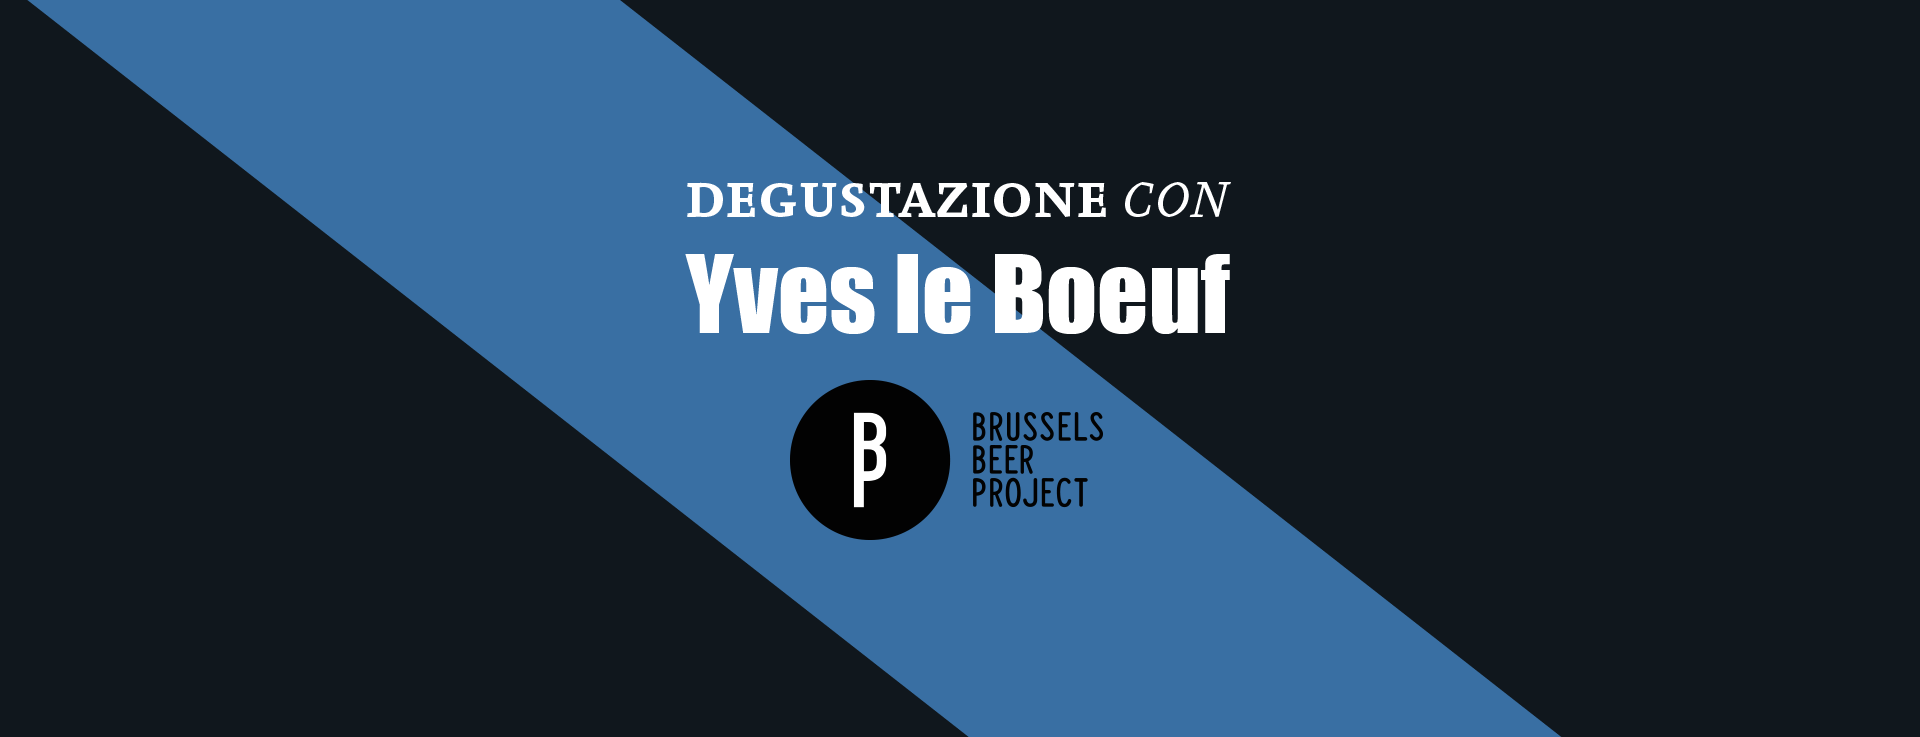 Degustazione con Yves Le Boeuf di Brussels beer Project al Dash Kitchen